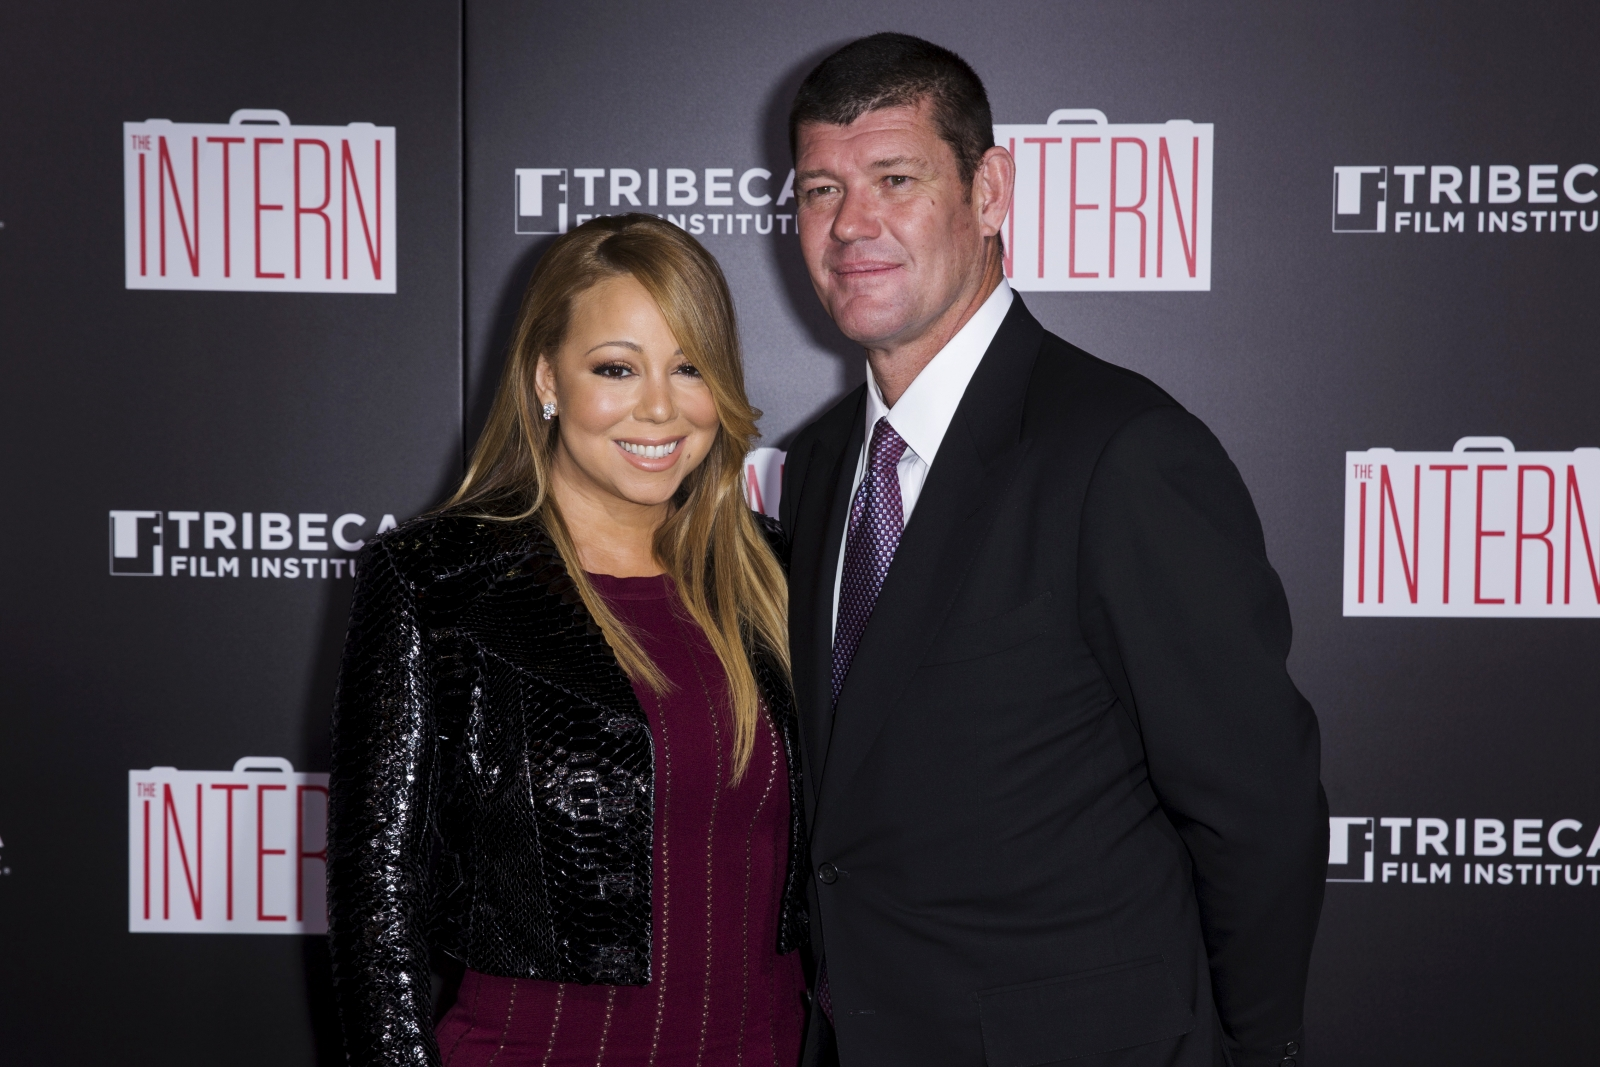 James Packer pays ex Mariah Carey 'millions'